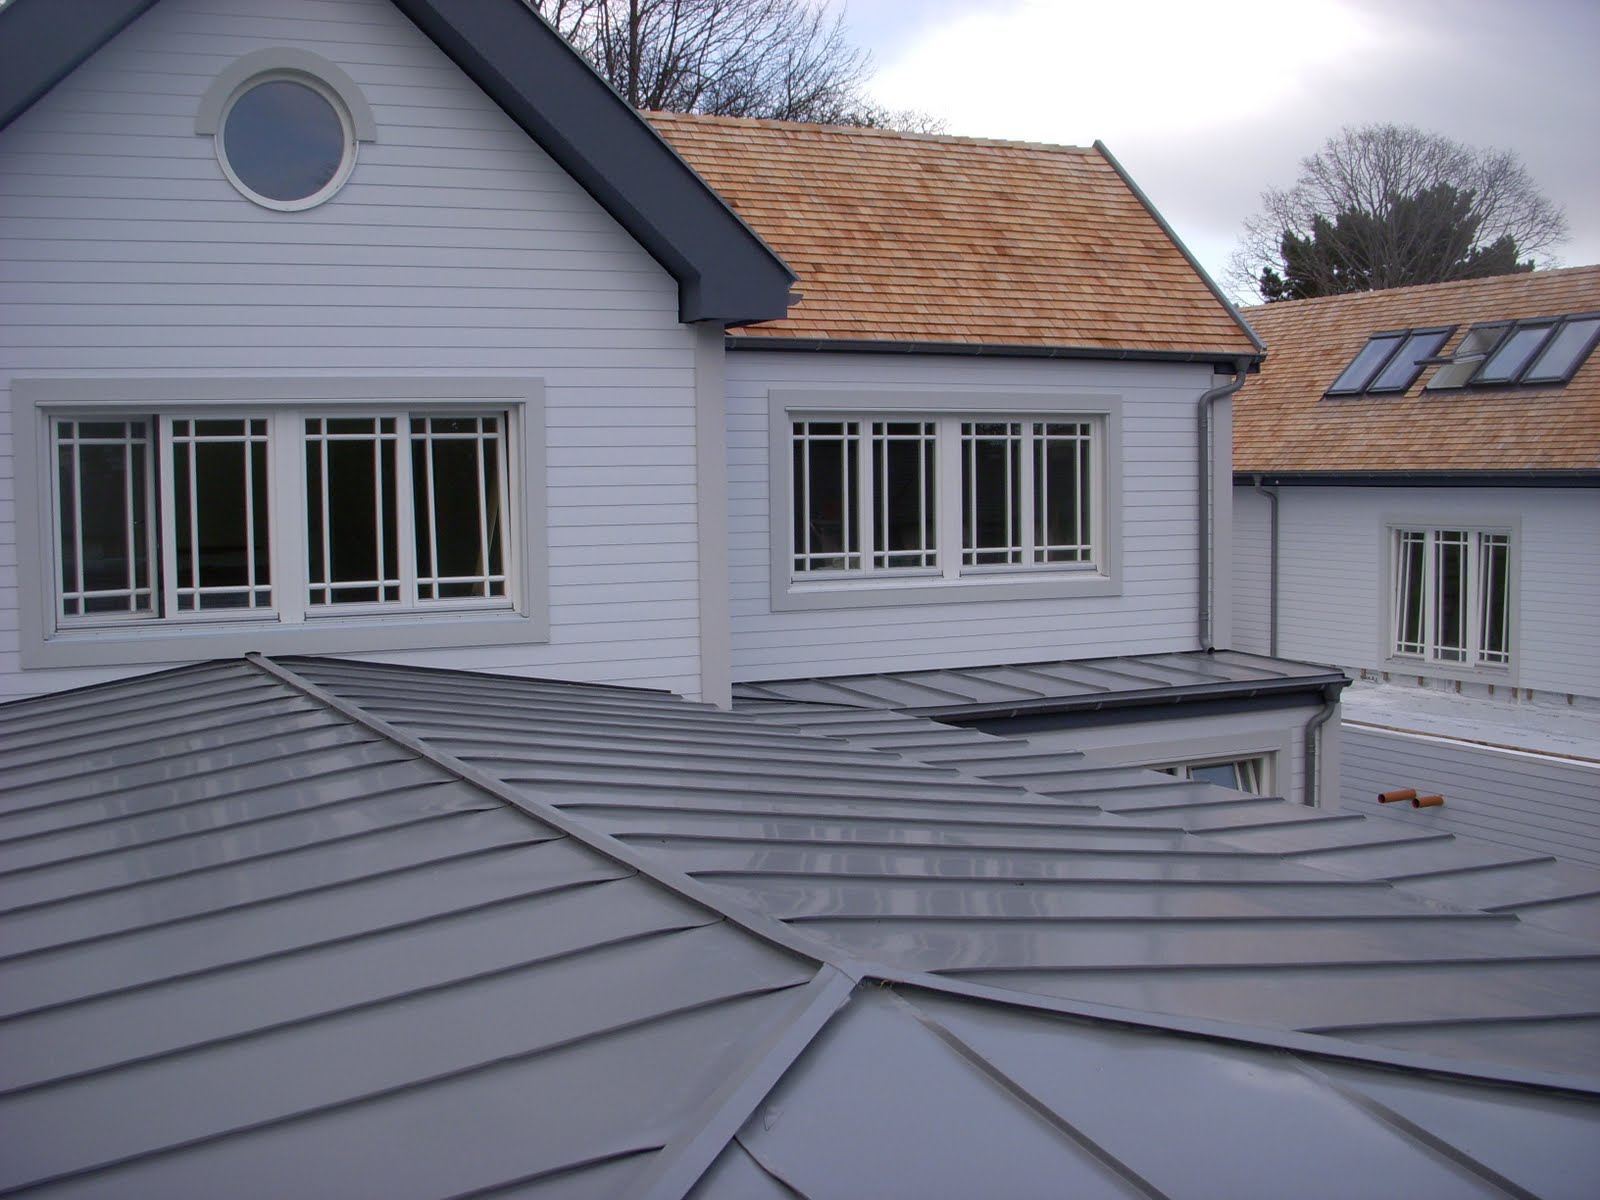 Boyle Copper Amp Zinc Craft Ltd Why Choose A Roof In Copper